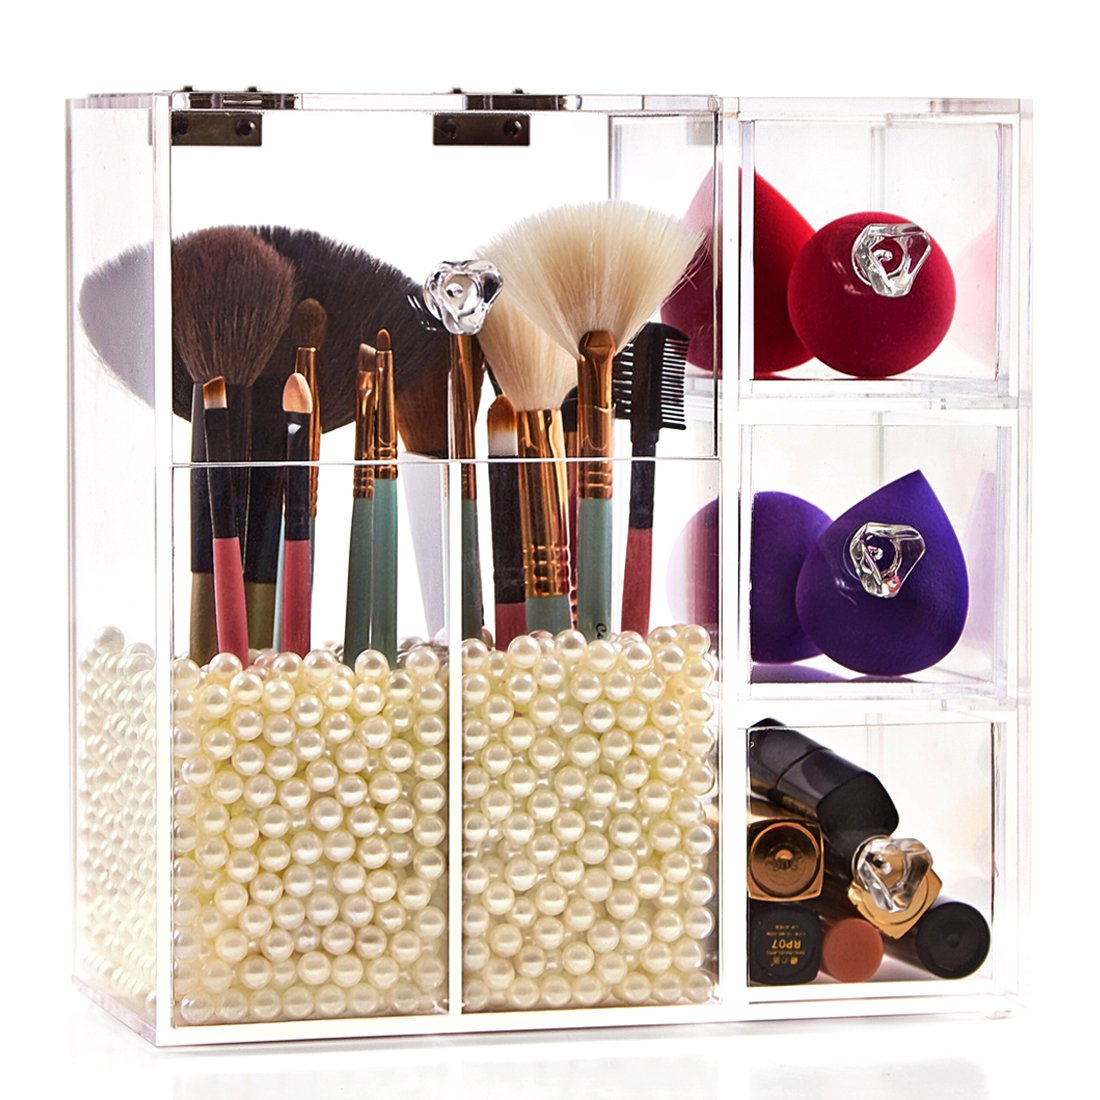 Newslly - Clear Acrylic Makeup Organizer with Brush Holders and Drawers